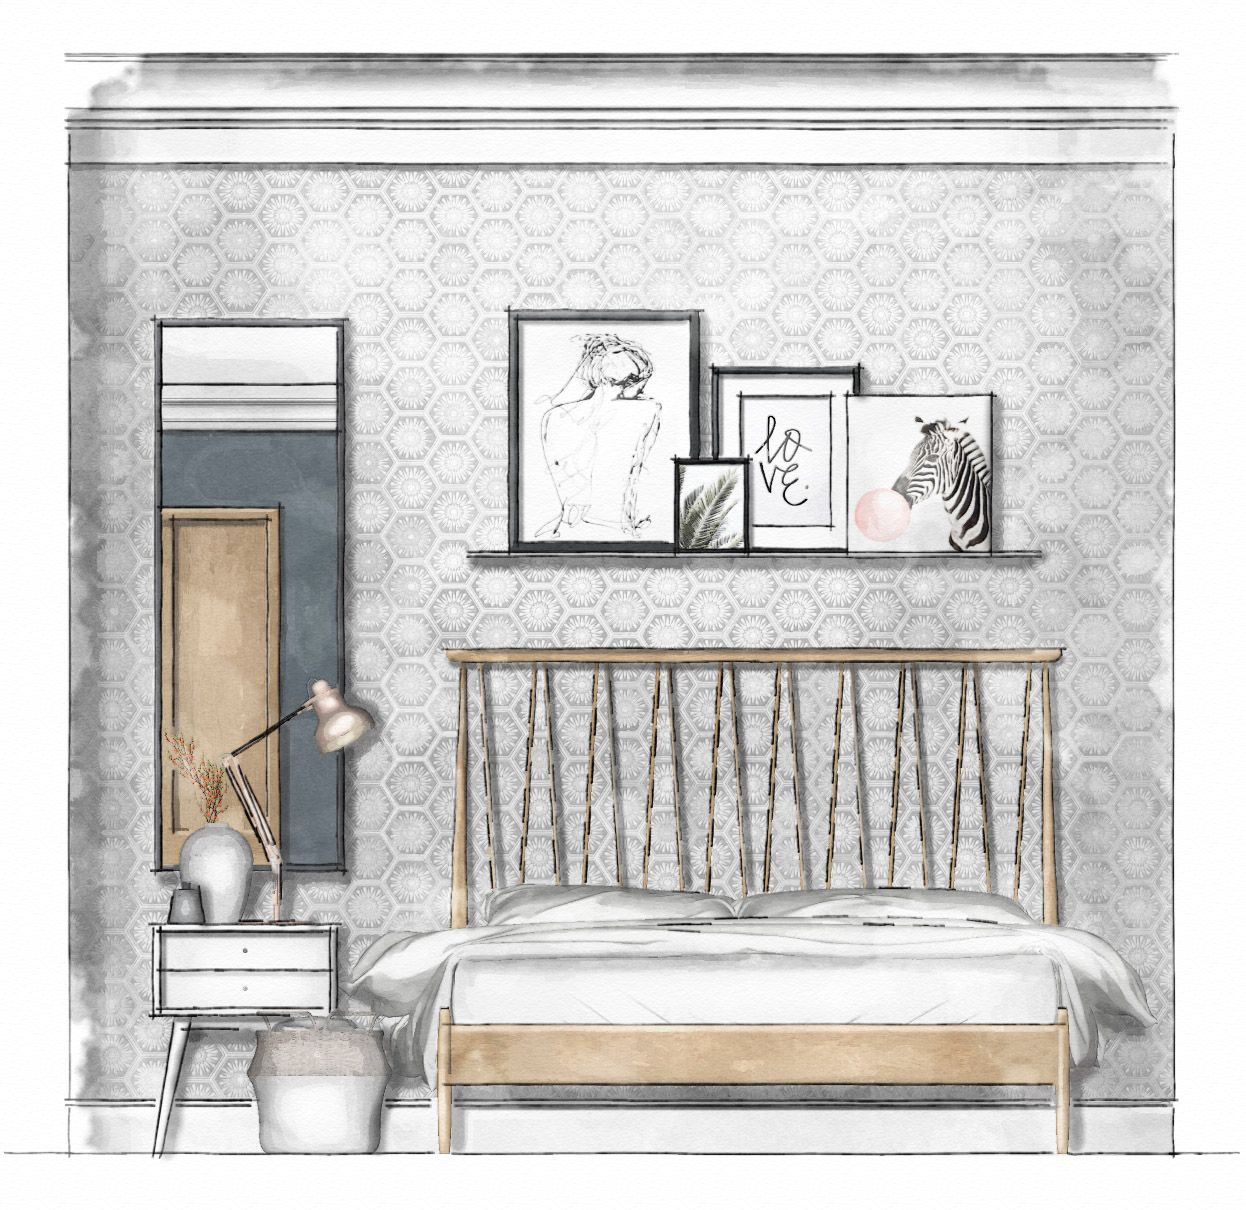 Bedroom Elevations Interior Design Elevation Blocks What: #7 Rendering Floor Plans & Elevations